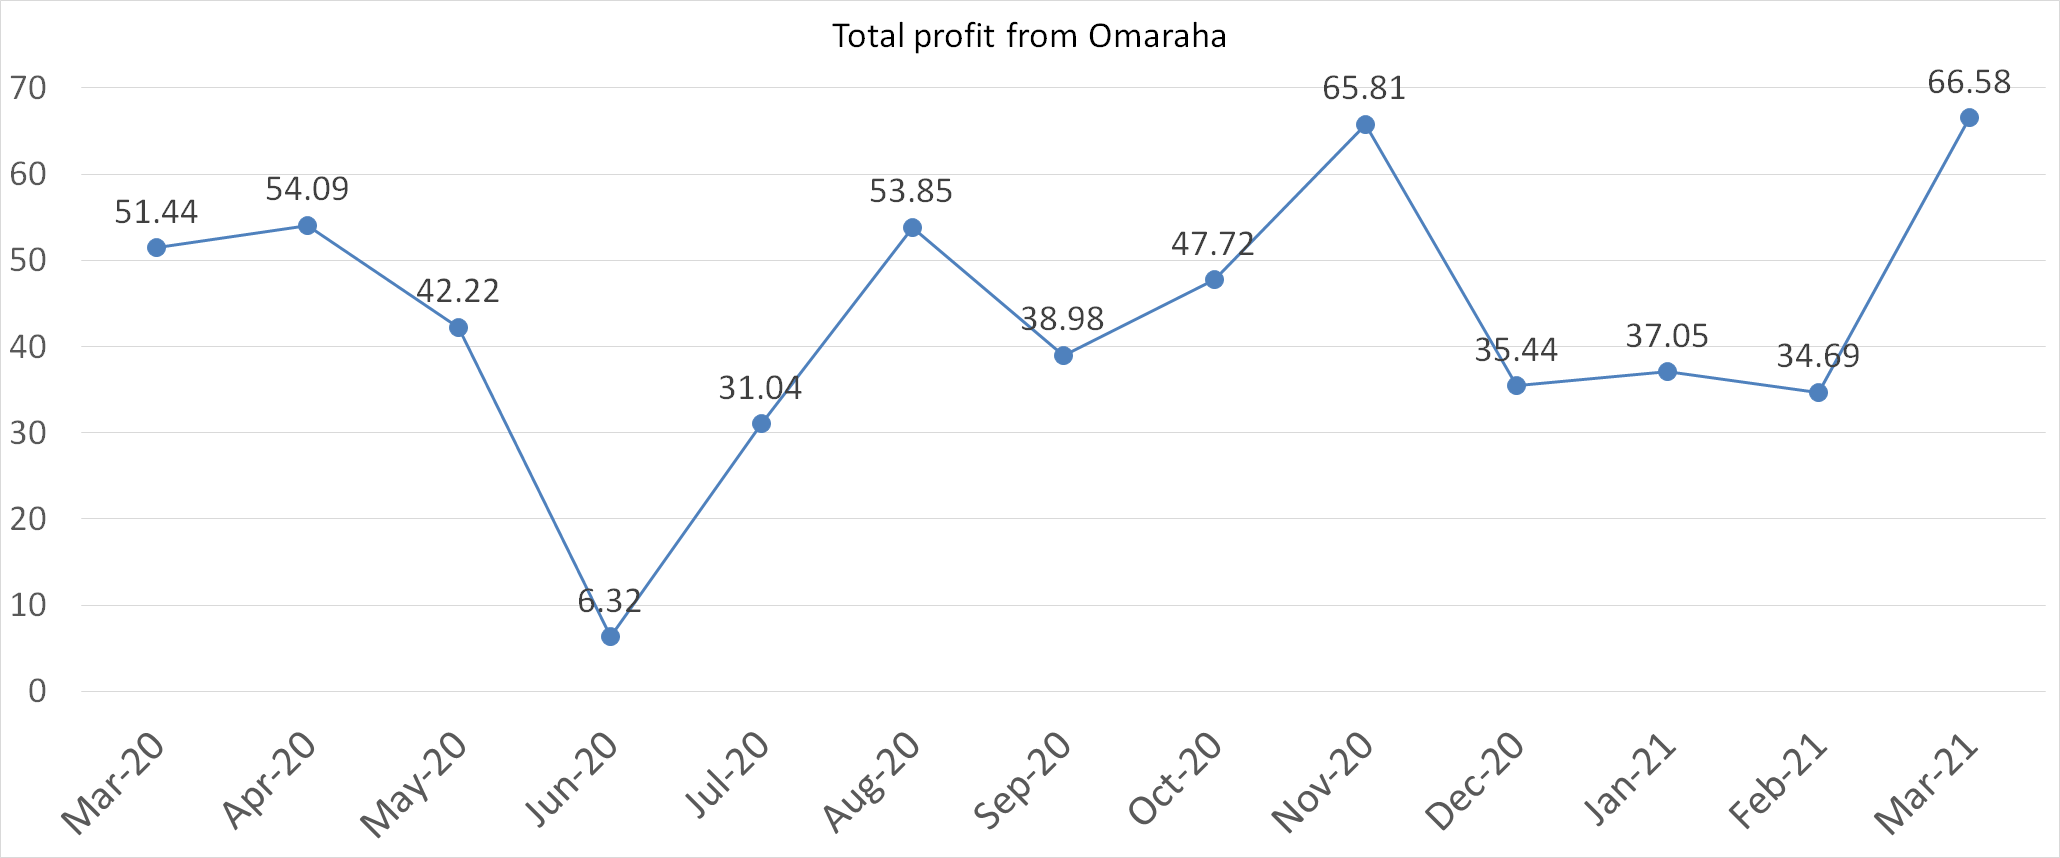 Total profit from Omaraha March 2021